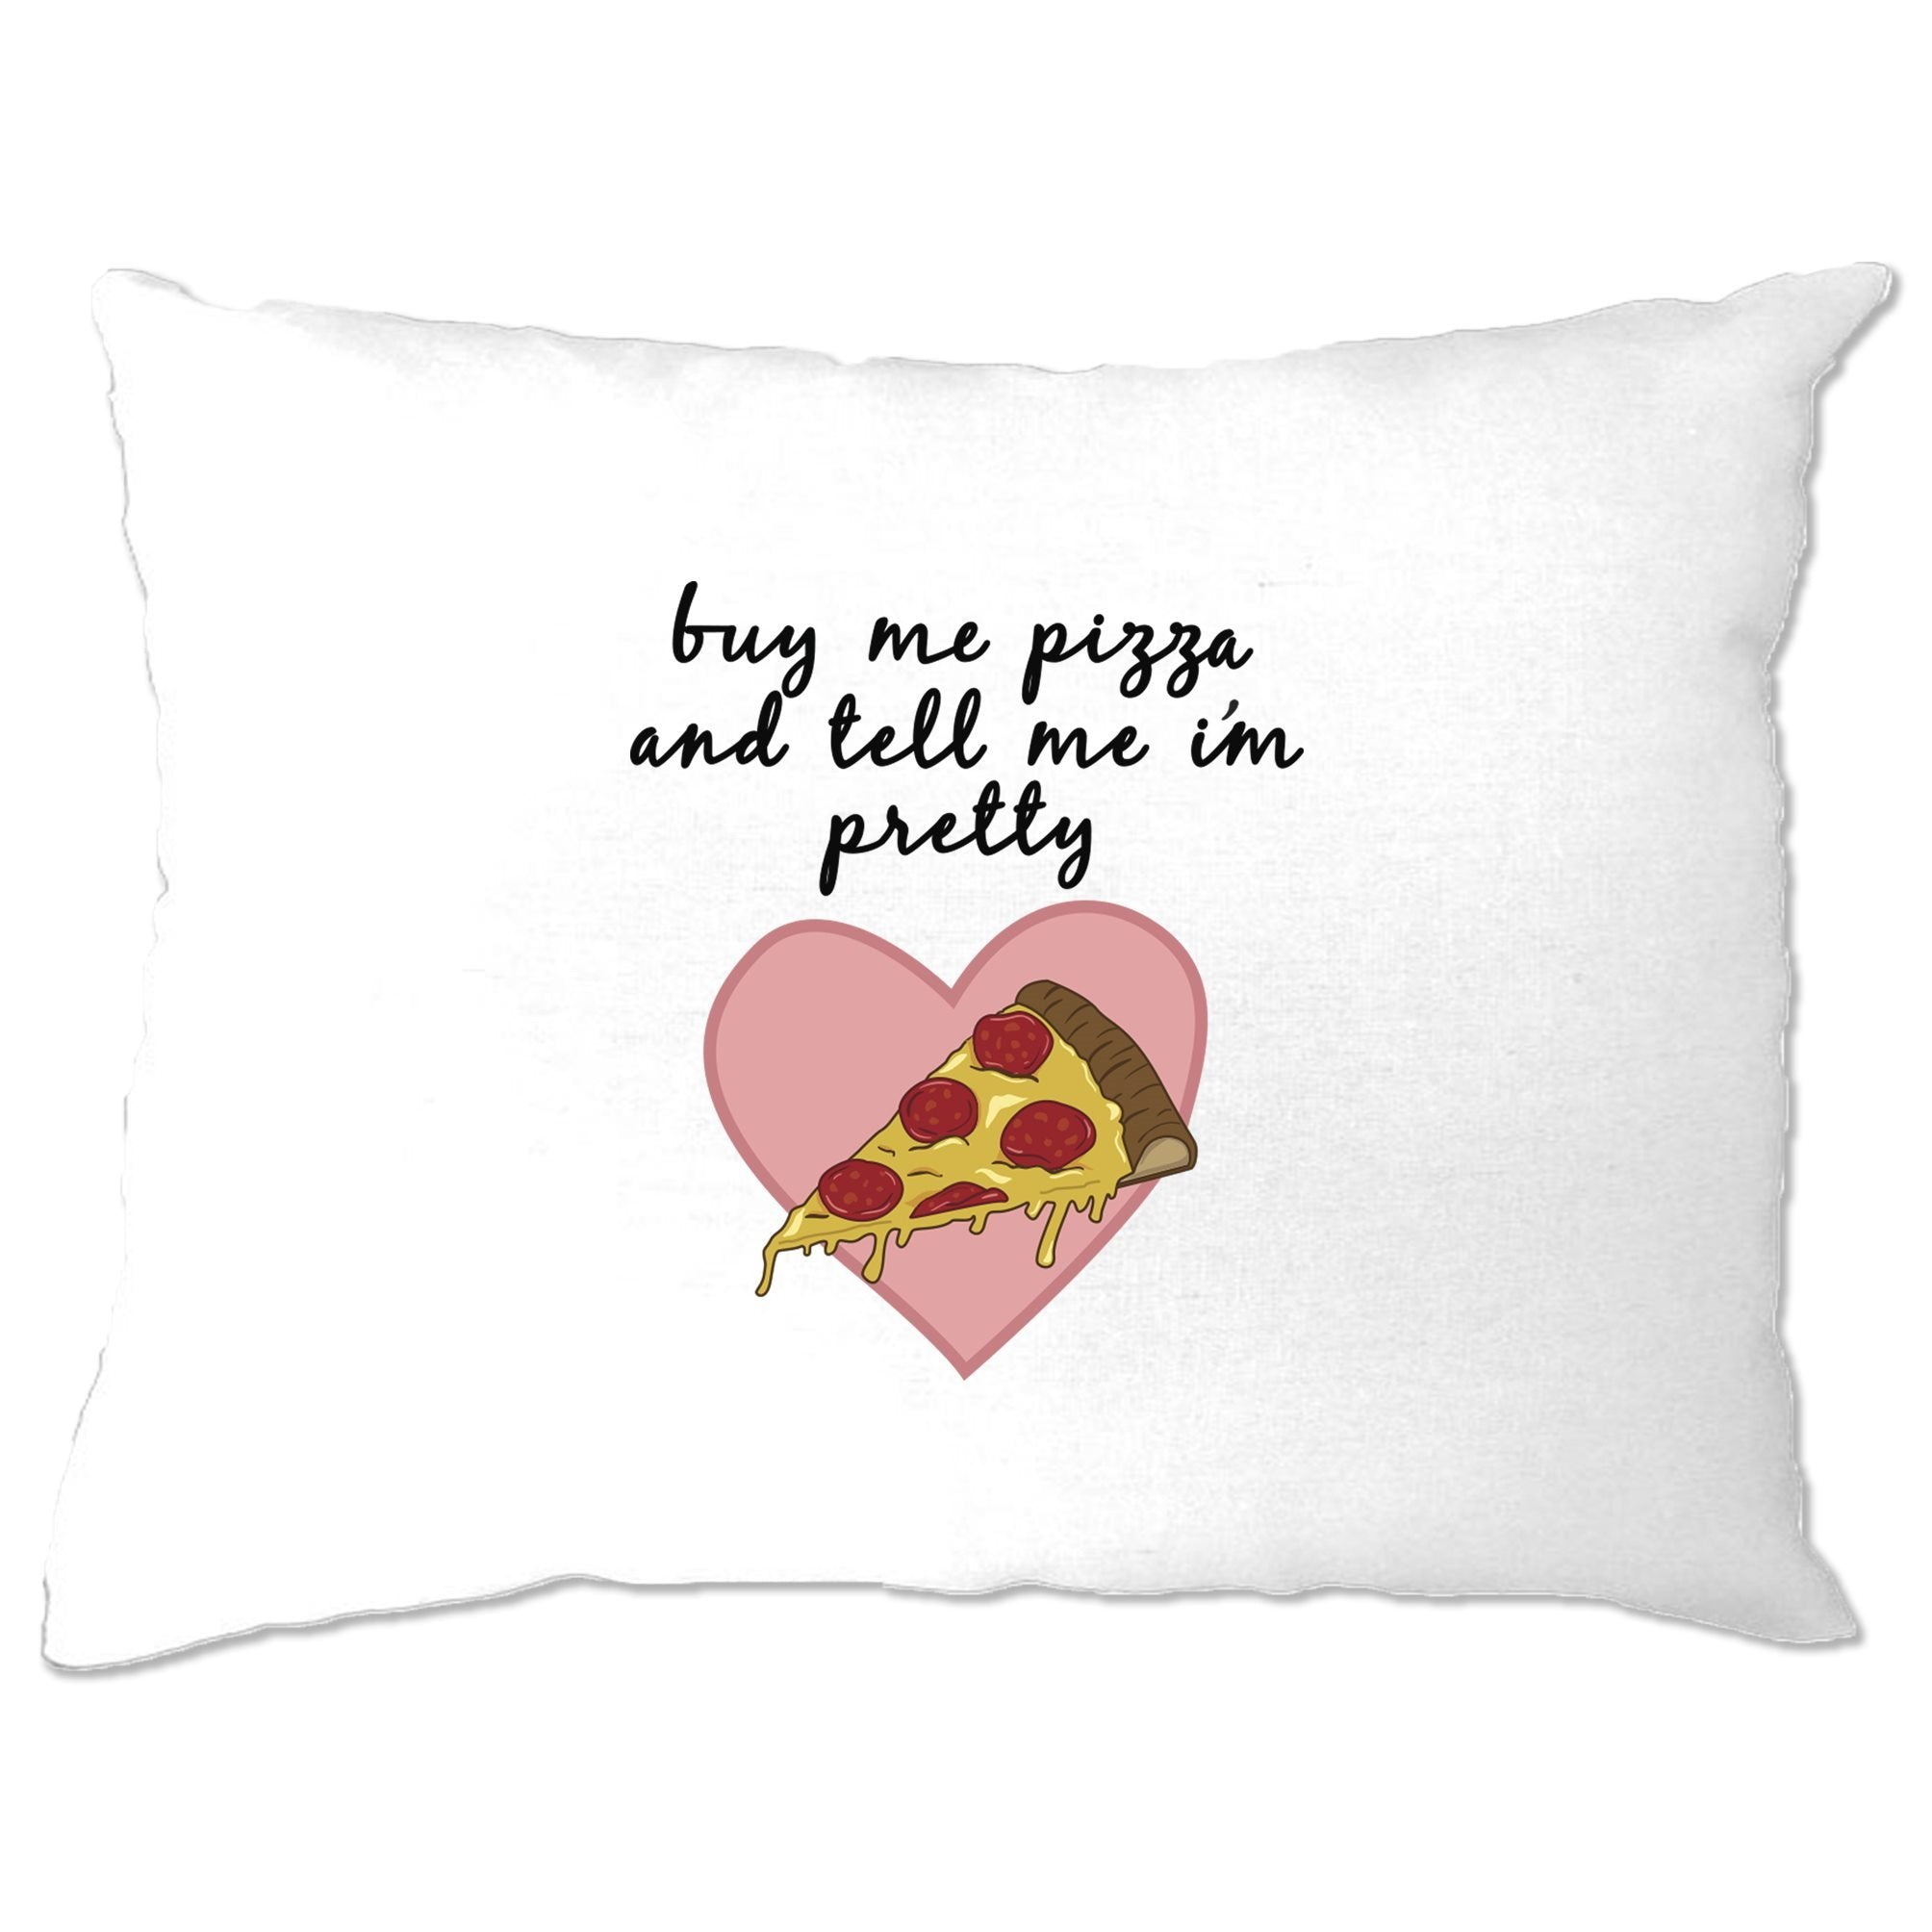 Joke Food Pillow Case Buy Me Pizza And Tell Me I'm Pretty